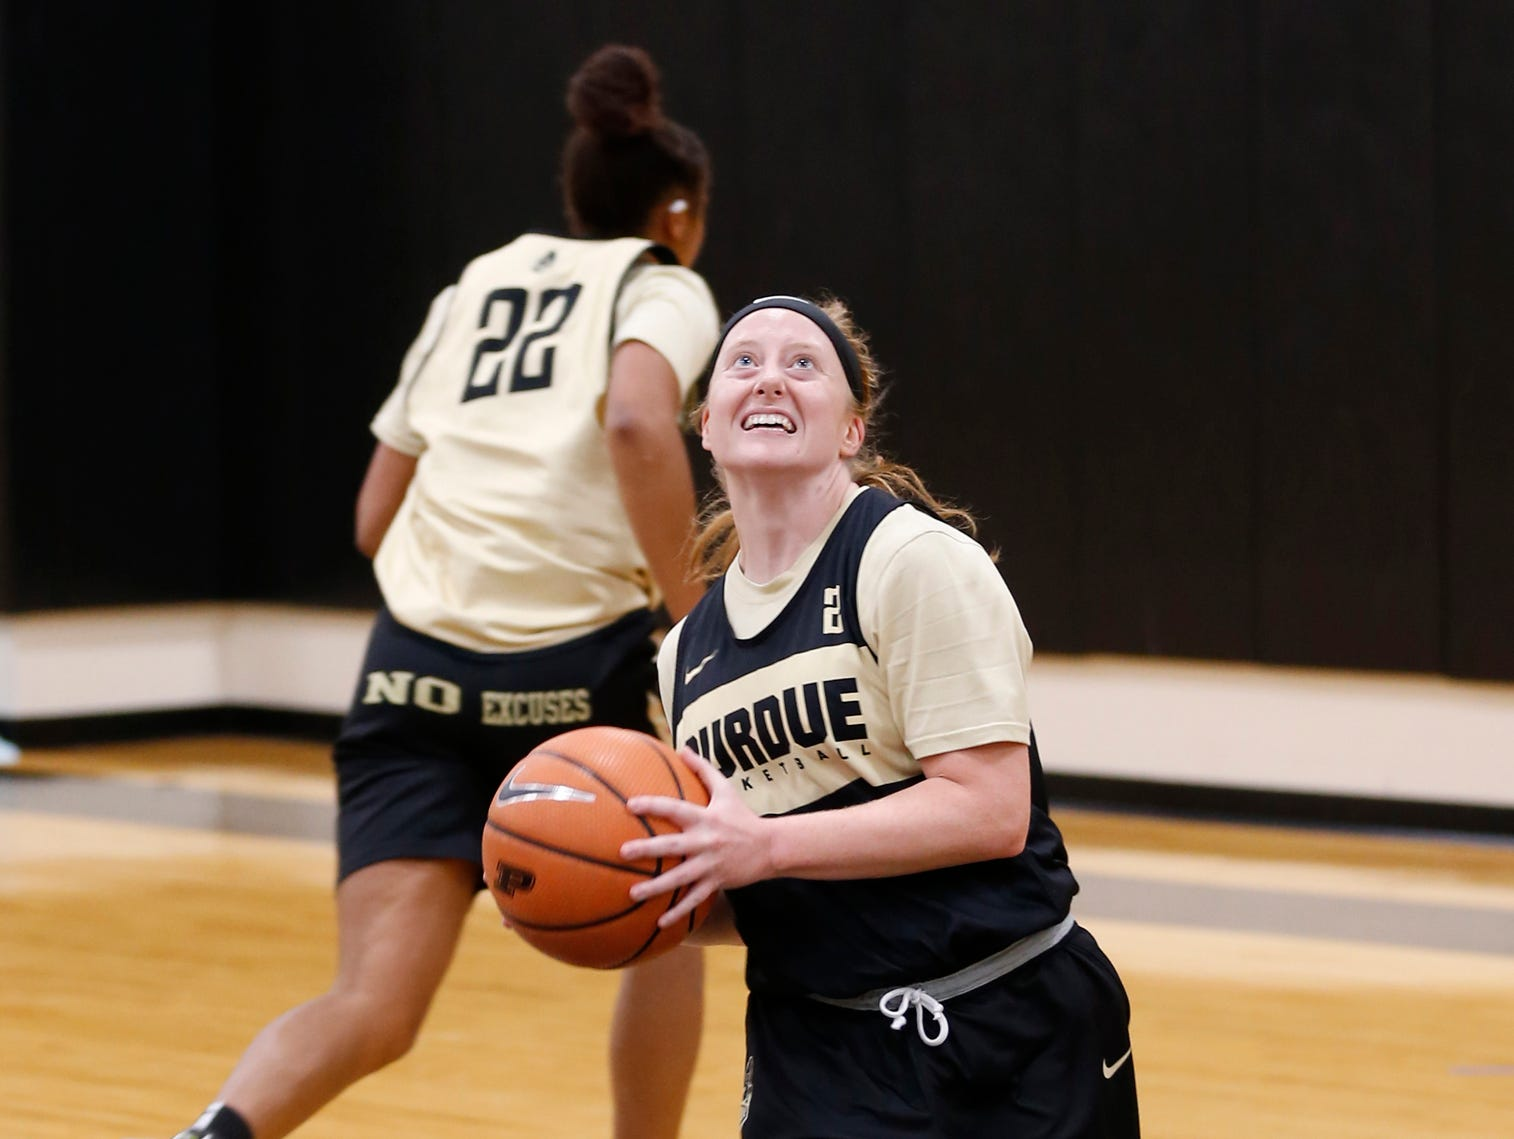 Abby Abel with a layup during Purdue women's basketball Wednesday, September 26, 2018, at Cardinal Court in Mackey Arena.